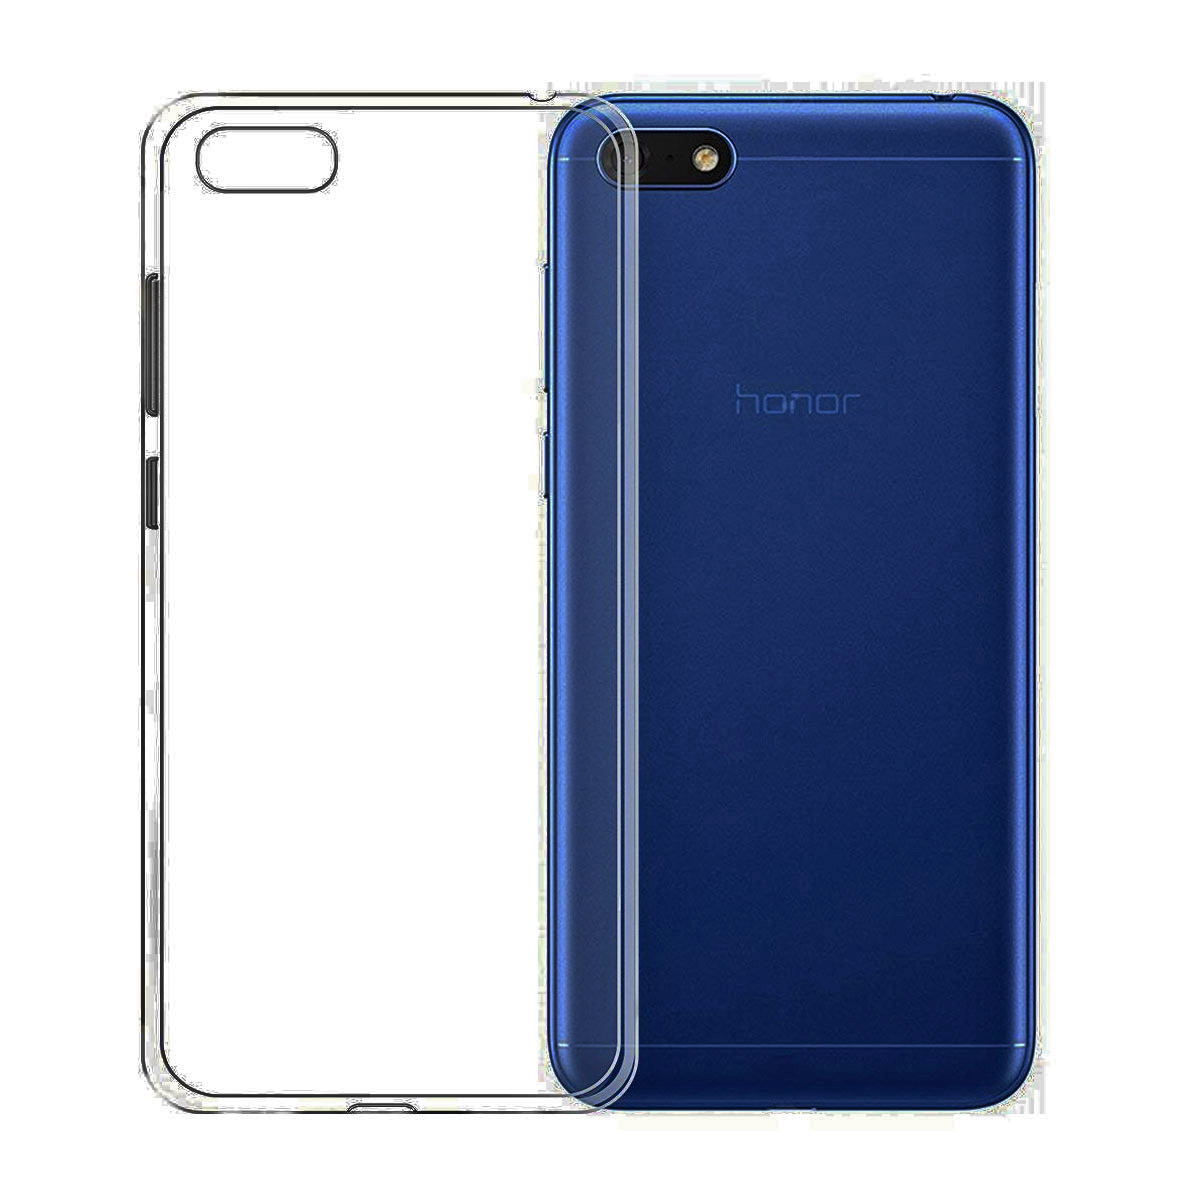 for Huawei <font><b>Honor</b></font> <font><b>7A</b></font> 8A Pro 8S 8C 8X Max 7C 7s Case Clear Transparent Soft Gel TPU Silicone Phone Cover AUM-AL00/AL20/<font><b>Dua</b></font>-<font><b>L22</b></font> image